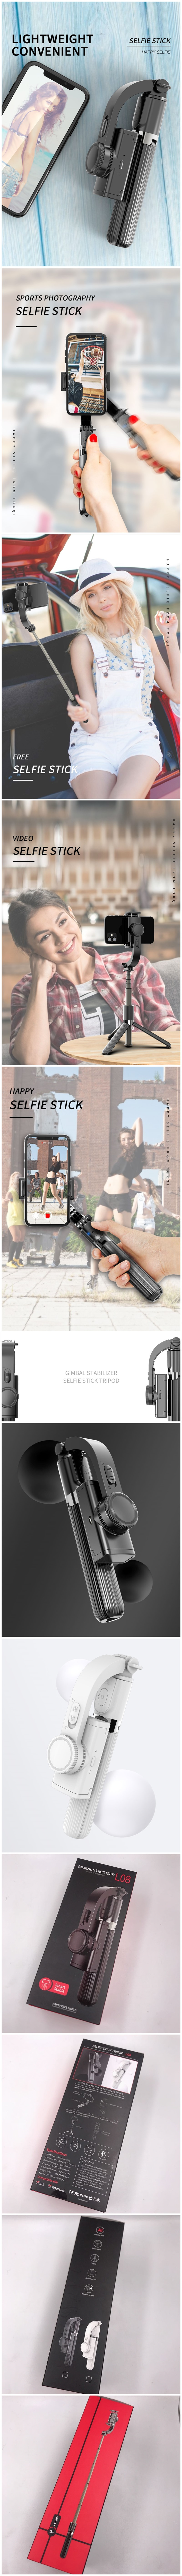 L08 single axis gimbal stabilizer Handheld stabilizer mobile phone selfie stick L08 L07